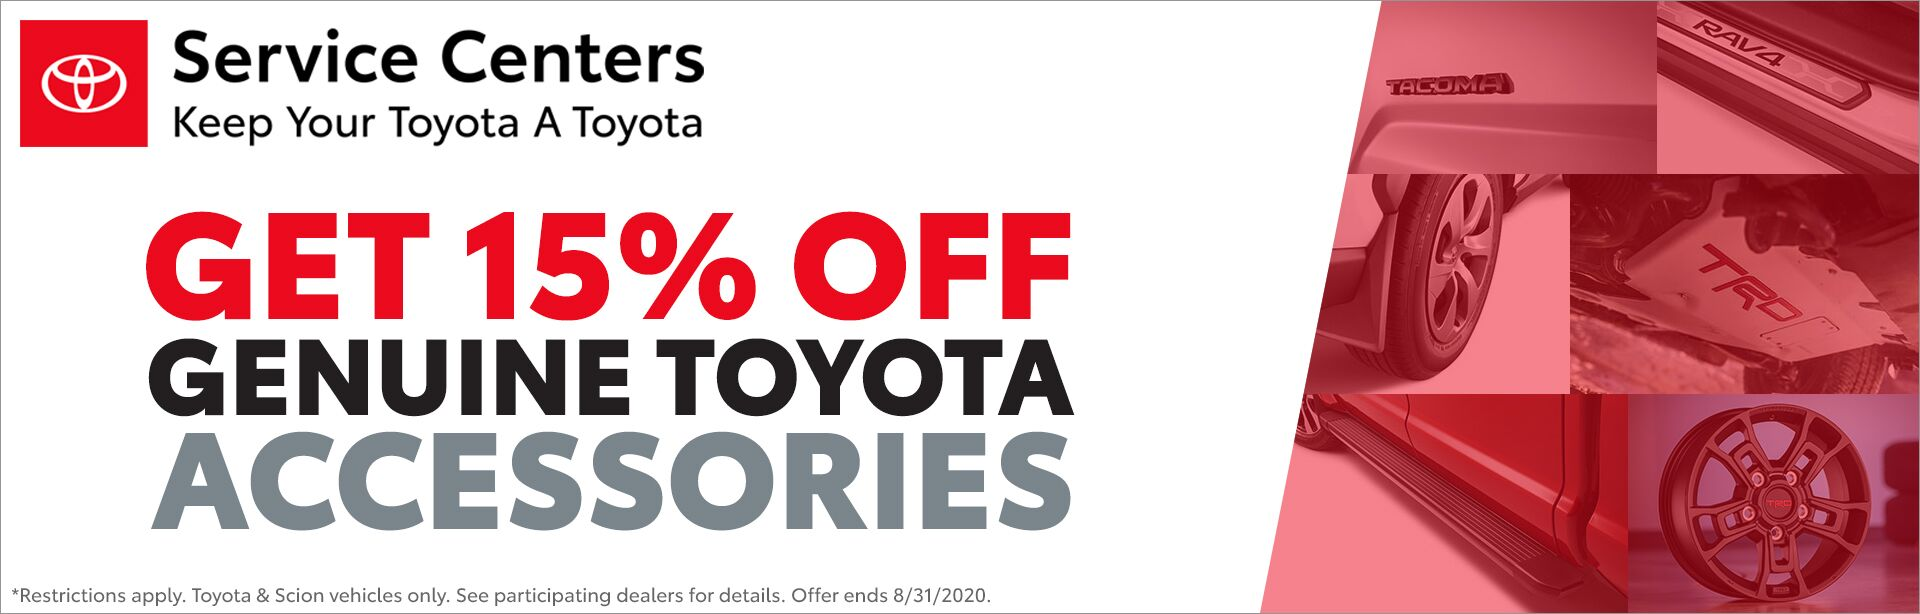 15% off Toyota Accessories - Aug 2020